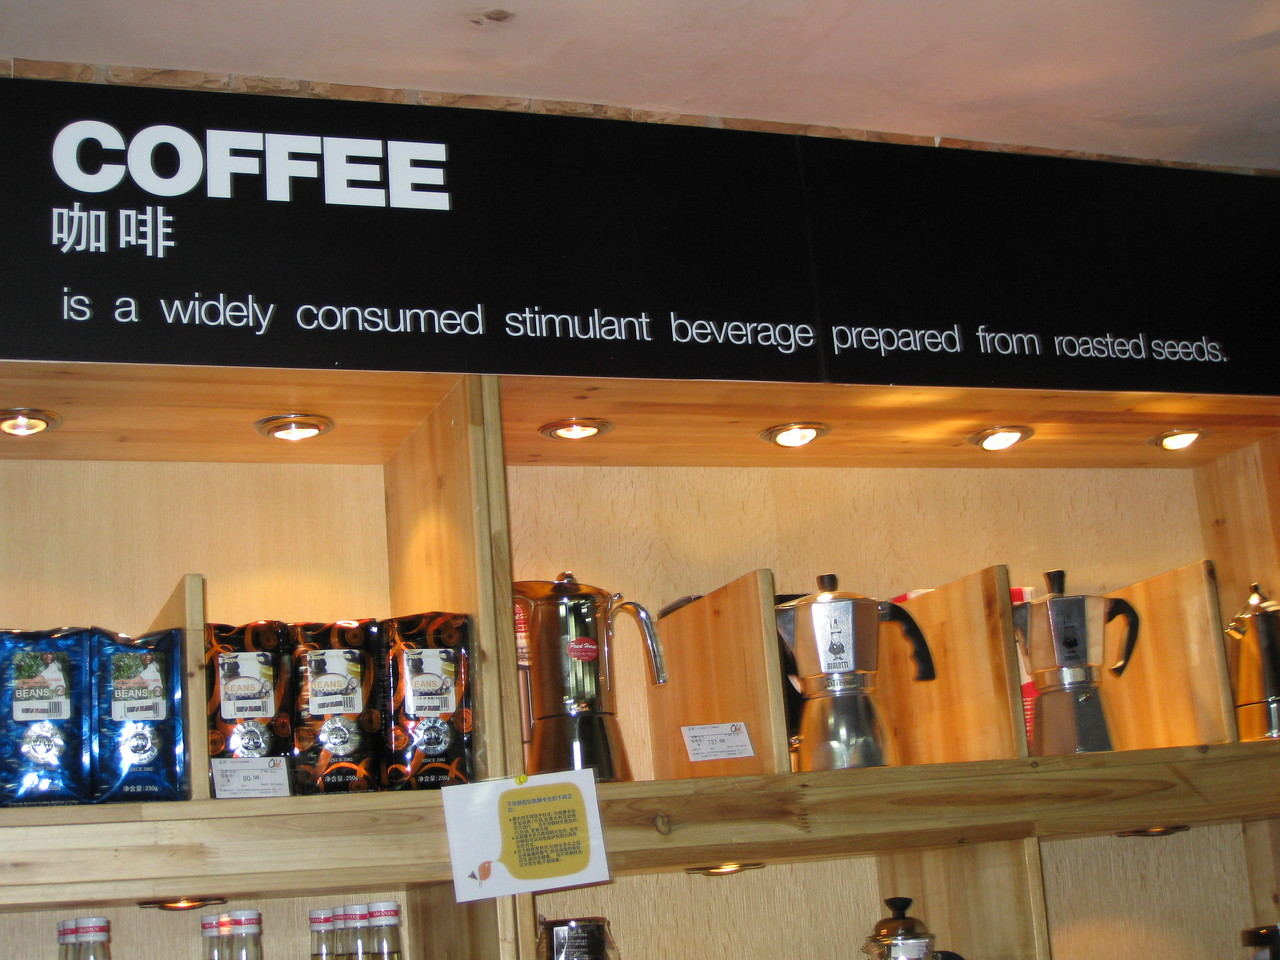 Apparently coffee is not as well known in China as it is in Seattle.